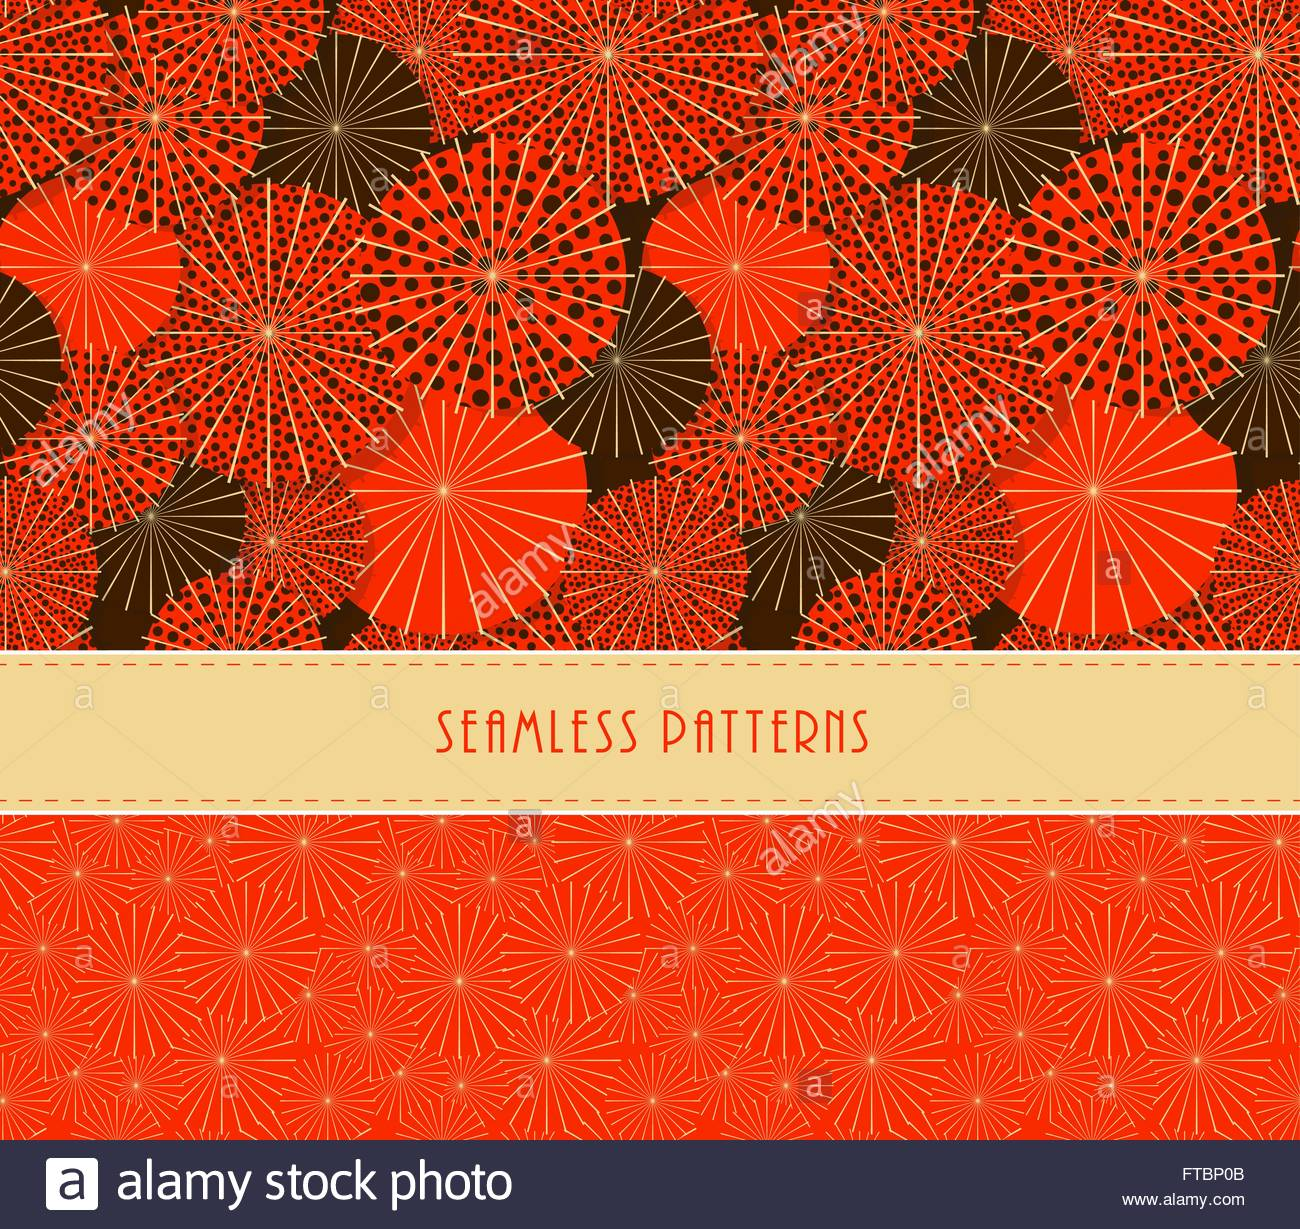 a set of two japanese style umbrella and fireworks seamless a set of two japanese style umbrella and fireworks seamless patterns in a red and brown color palette